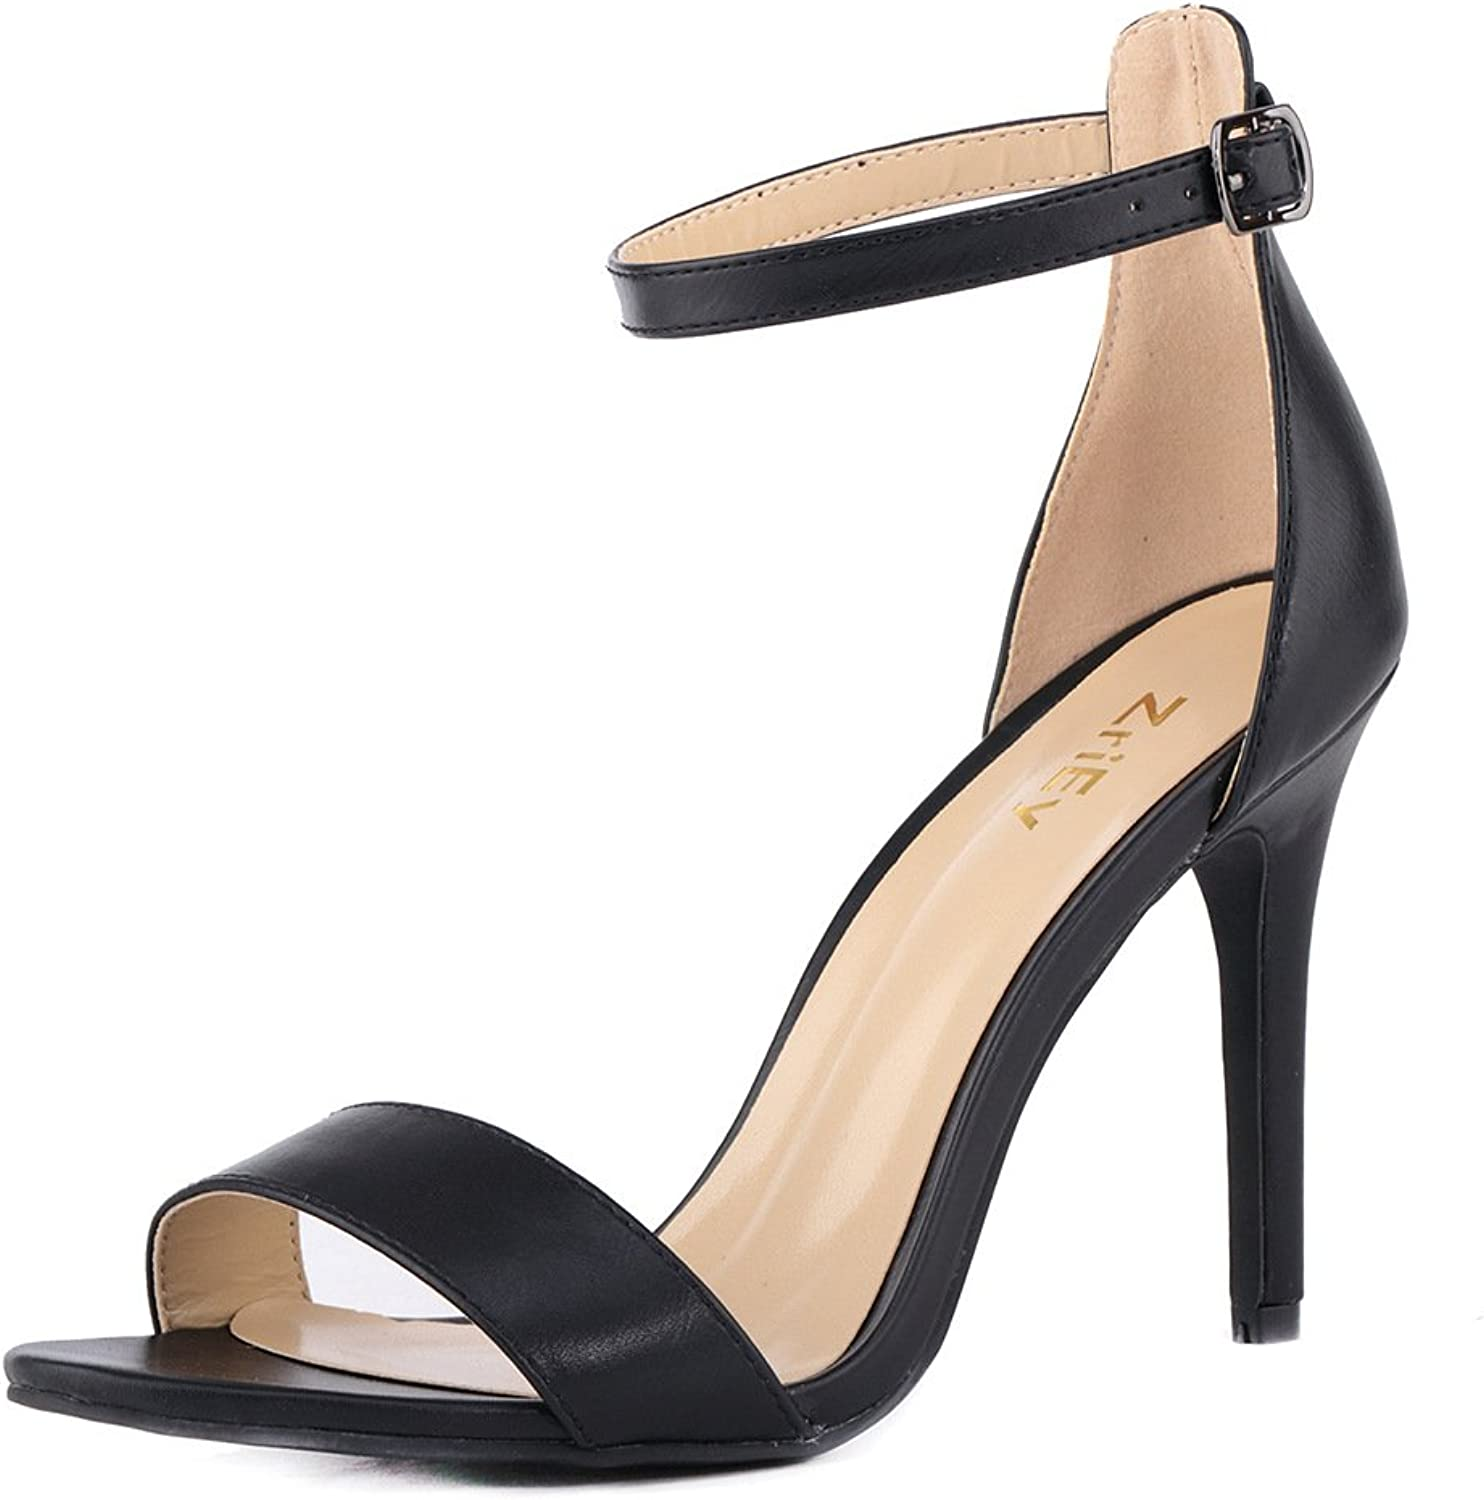 ZriEy Women's Heeled Sandals Ankle Strap High Heels 10CM Open Toe Bridal Party shoes